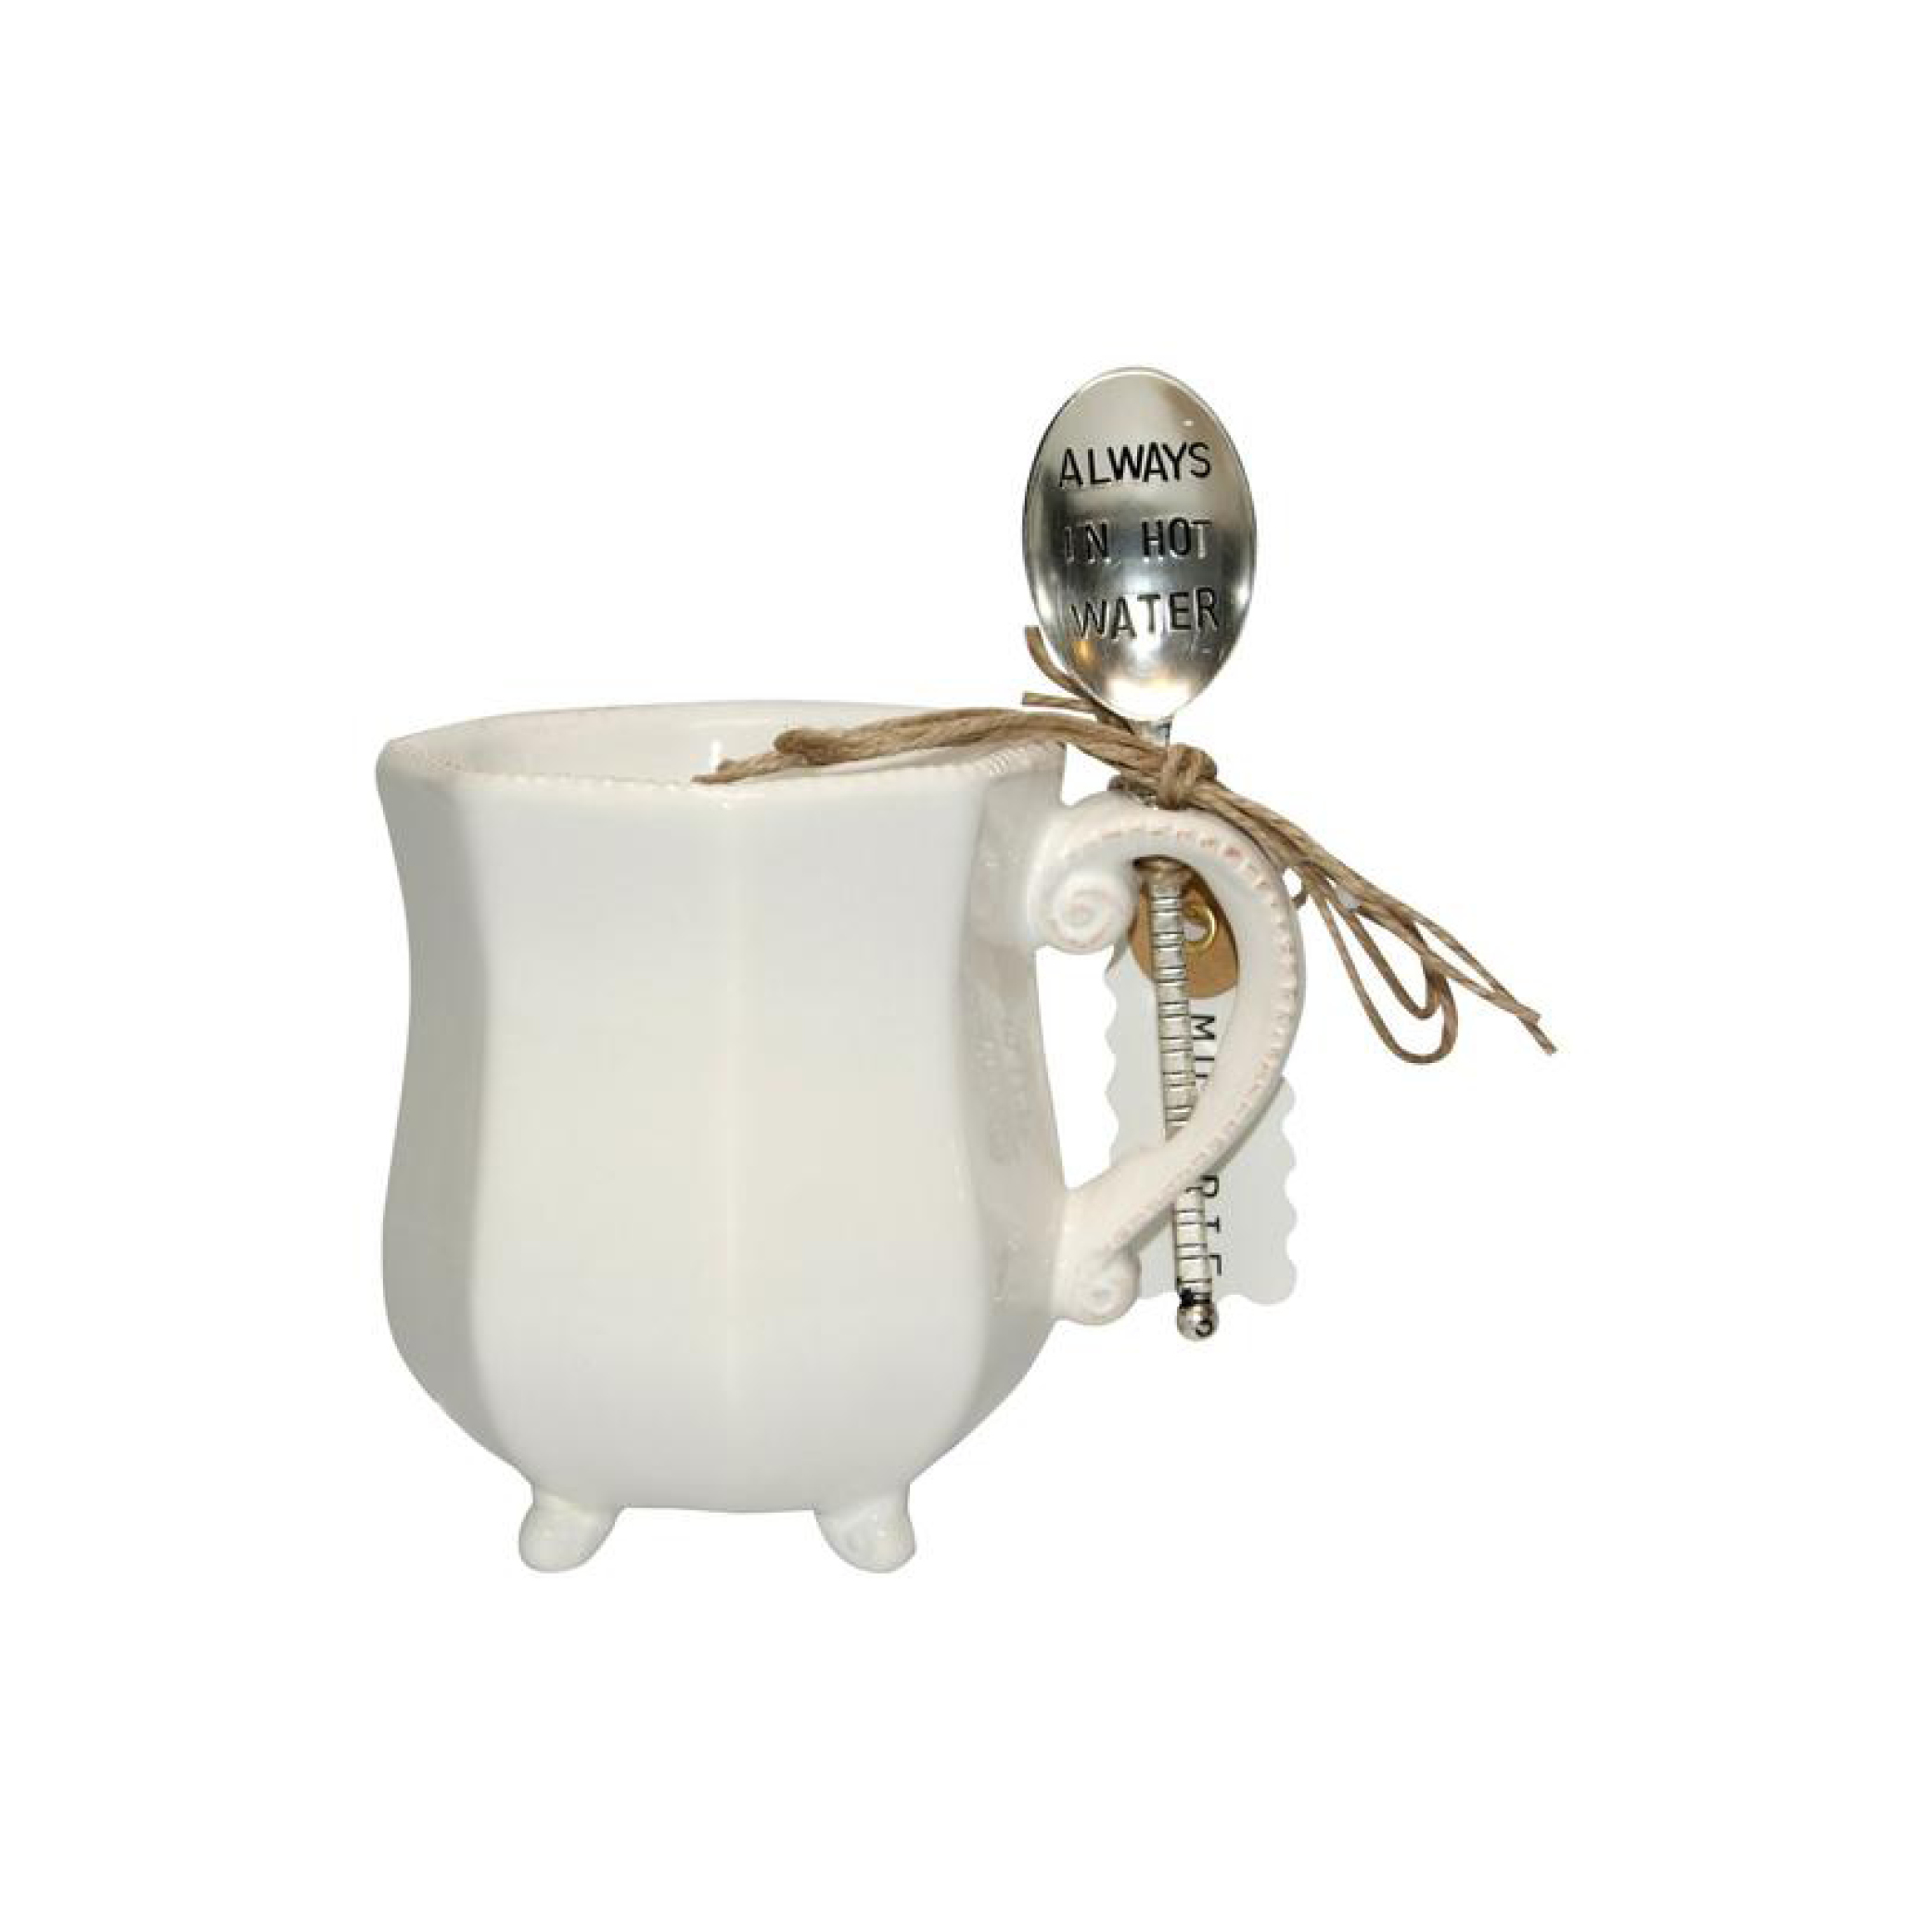 Mud Pie Hot Water Tea Set $16.95   Wants 1 Has 1 Needs 0